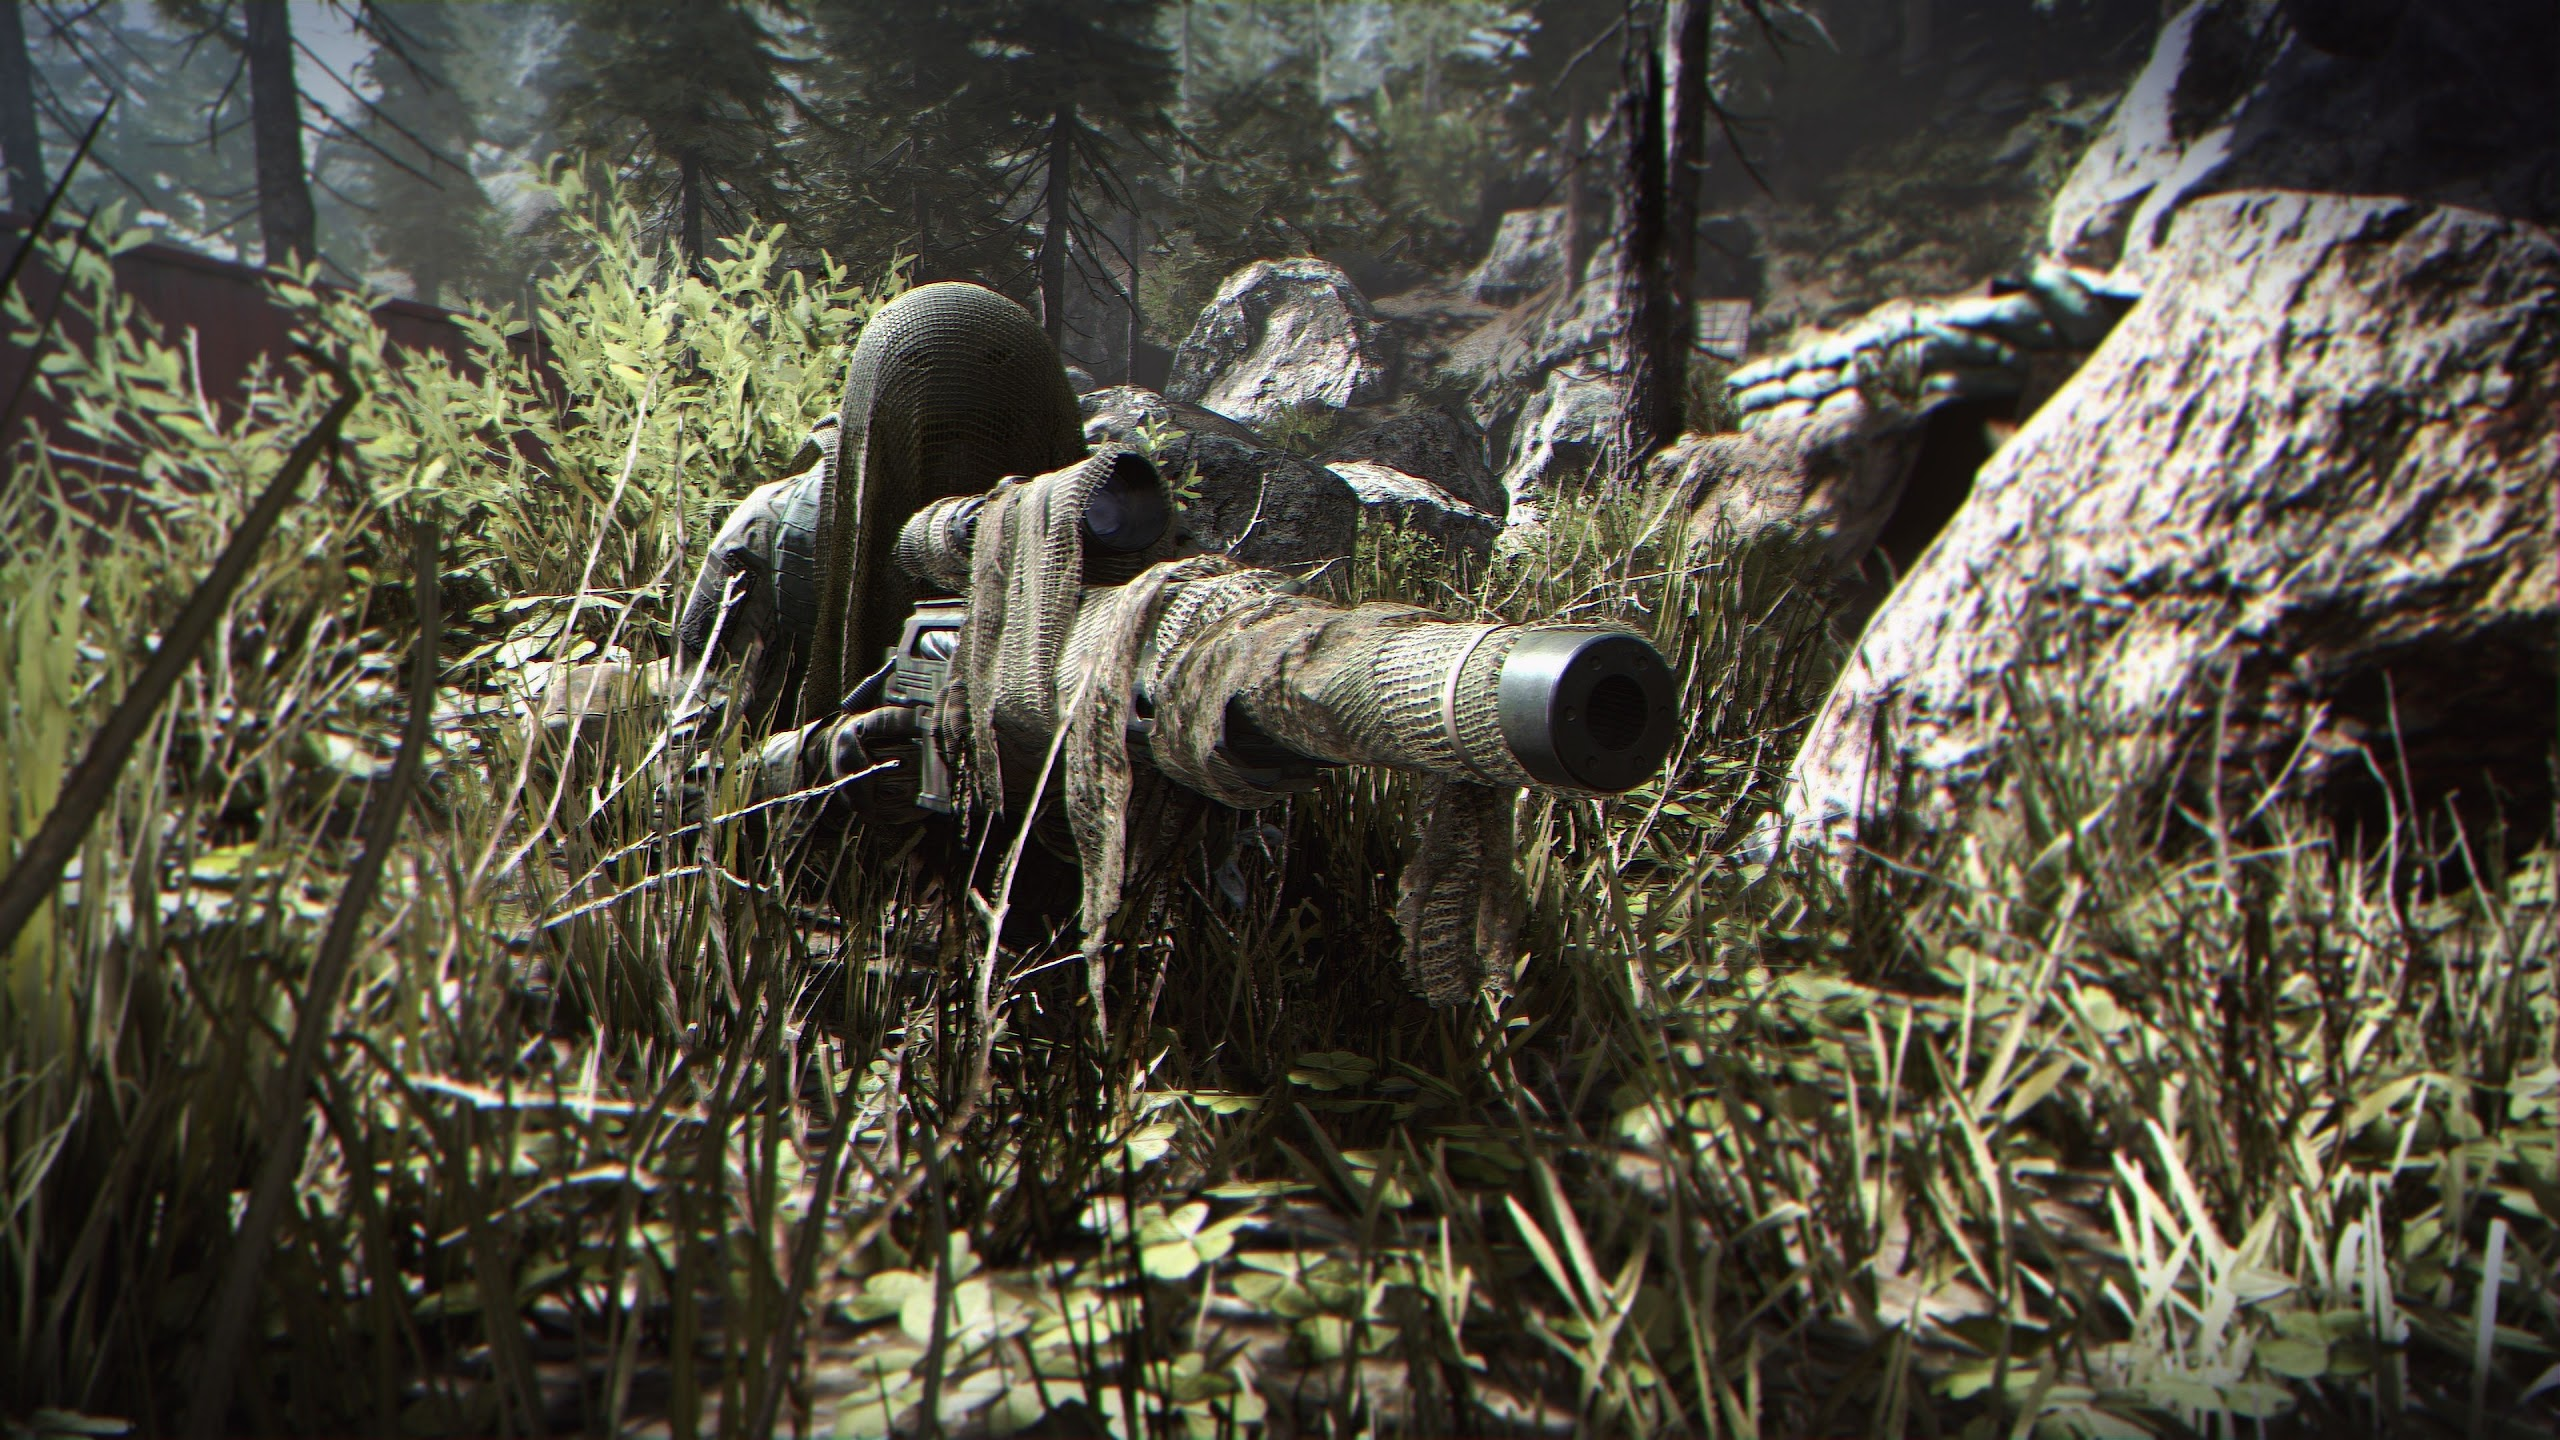 Call Of Duty Modern Warfare Sniper Camouflage Soldier 4k Wallpaper 11